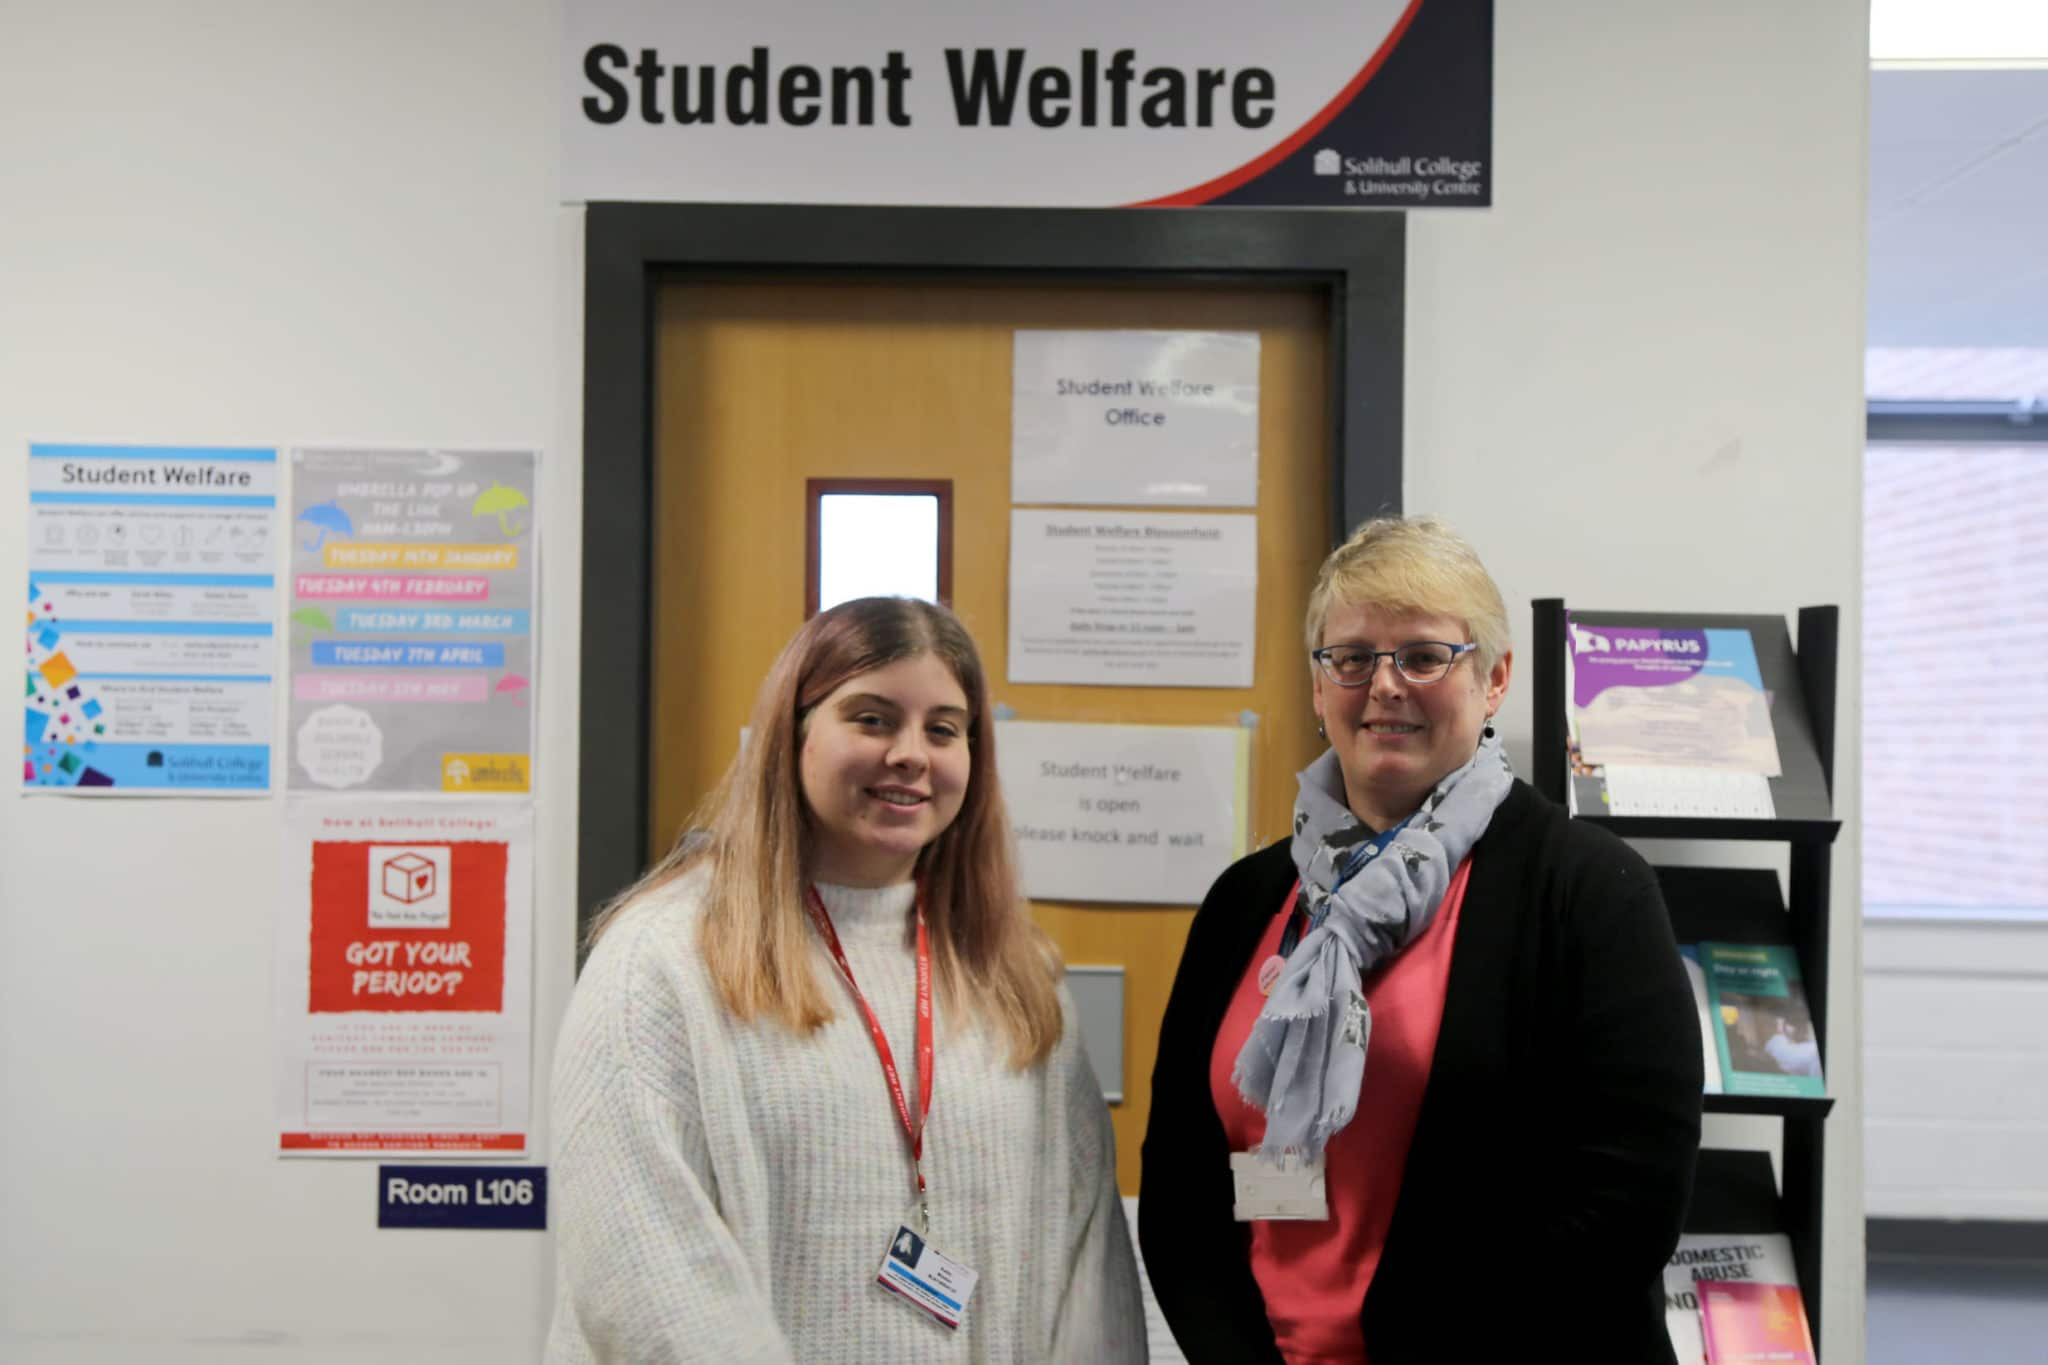 Katie with a member of staff